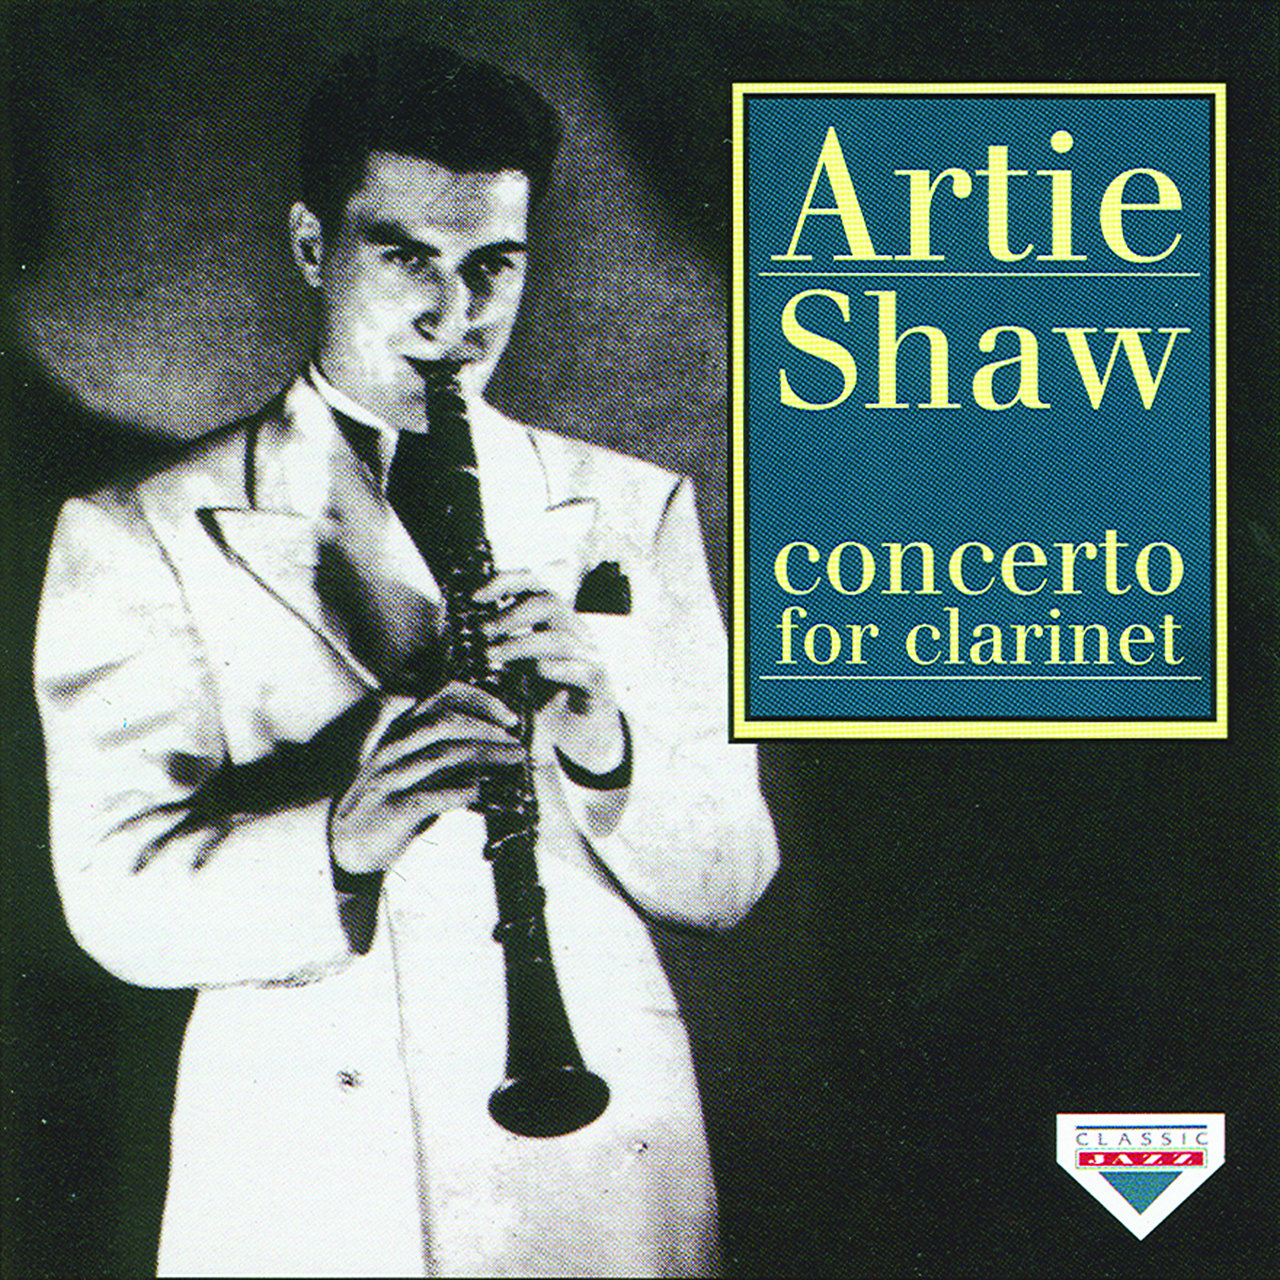 Artie Shaw Yesterdays Concerto For Clarinet By Artie Shaw On Tidal